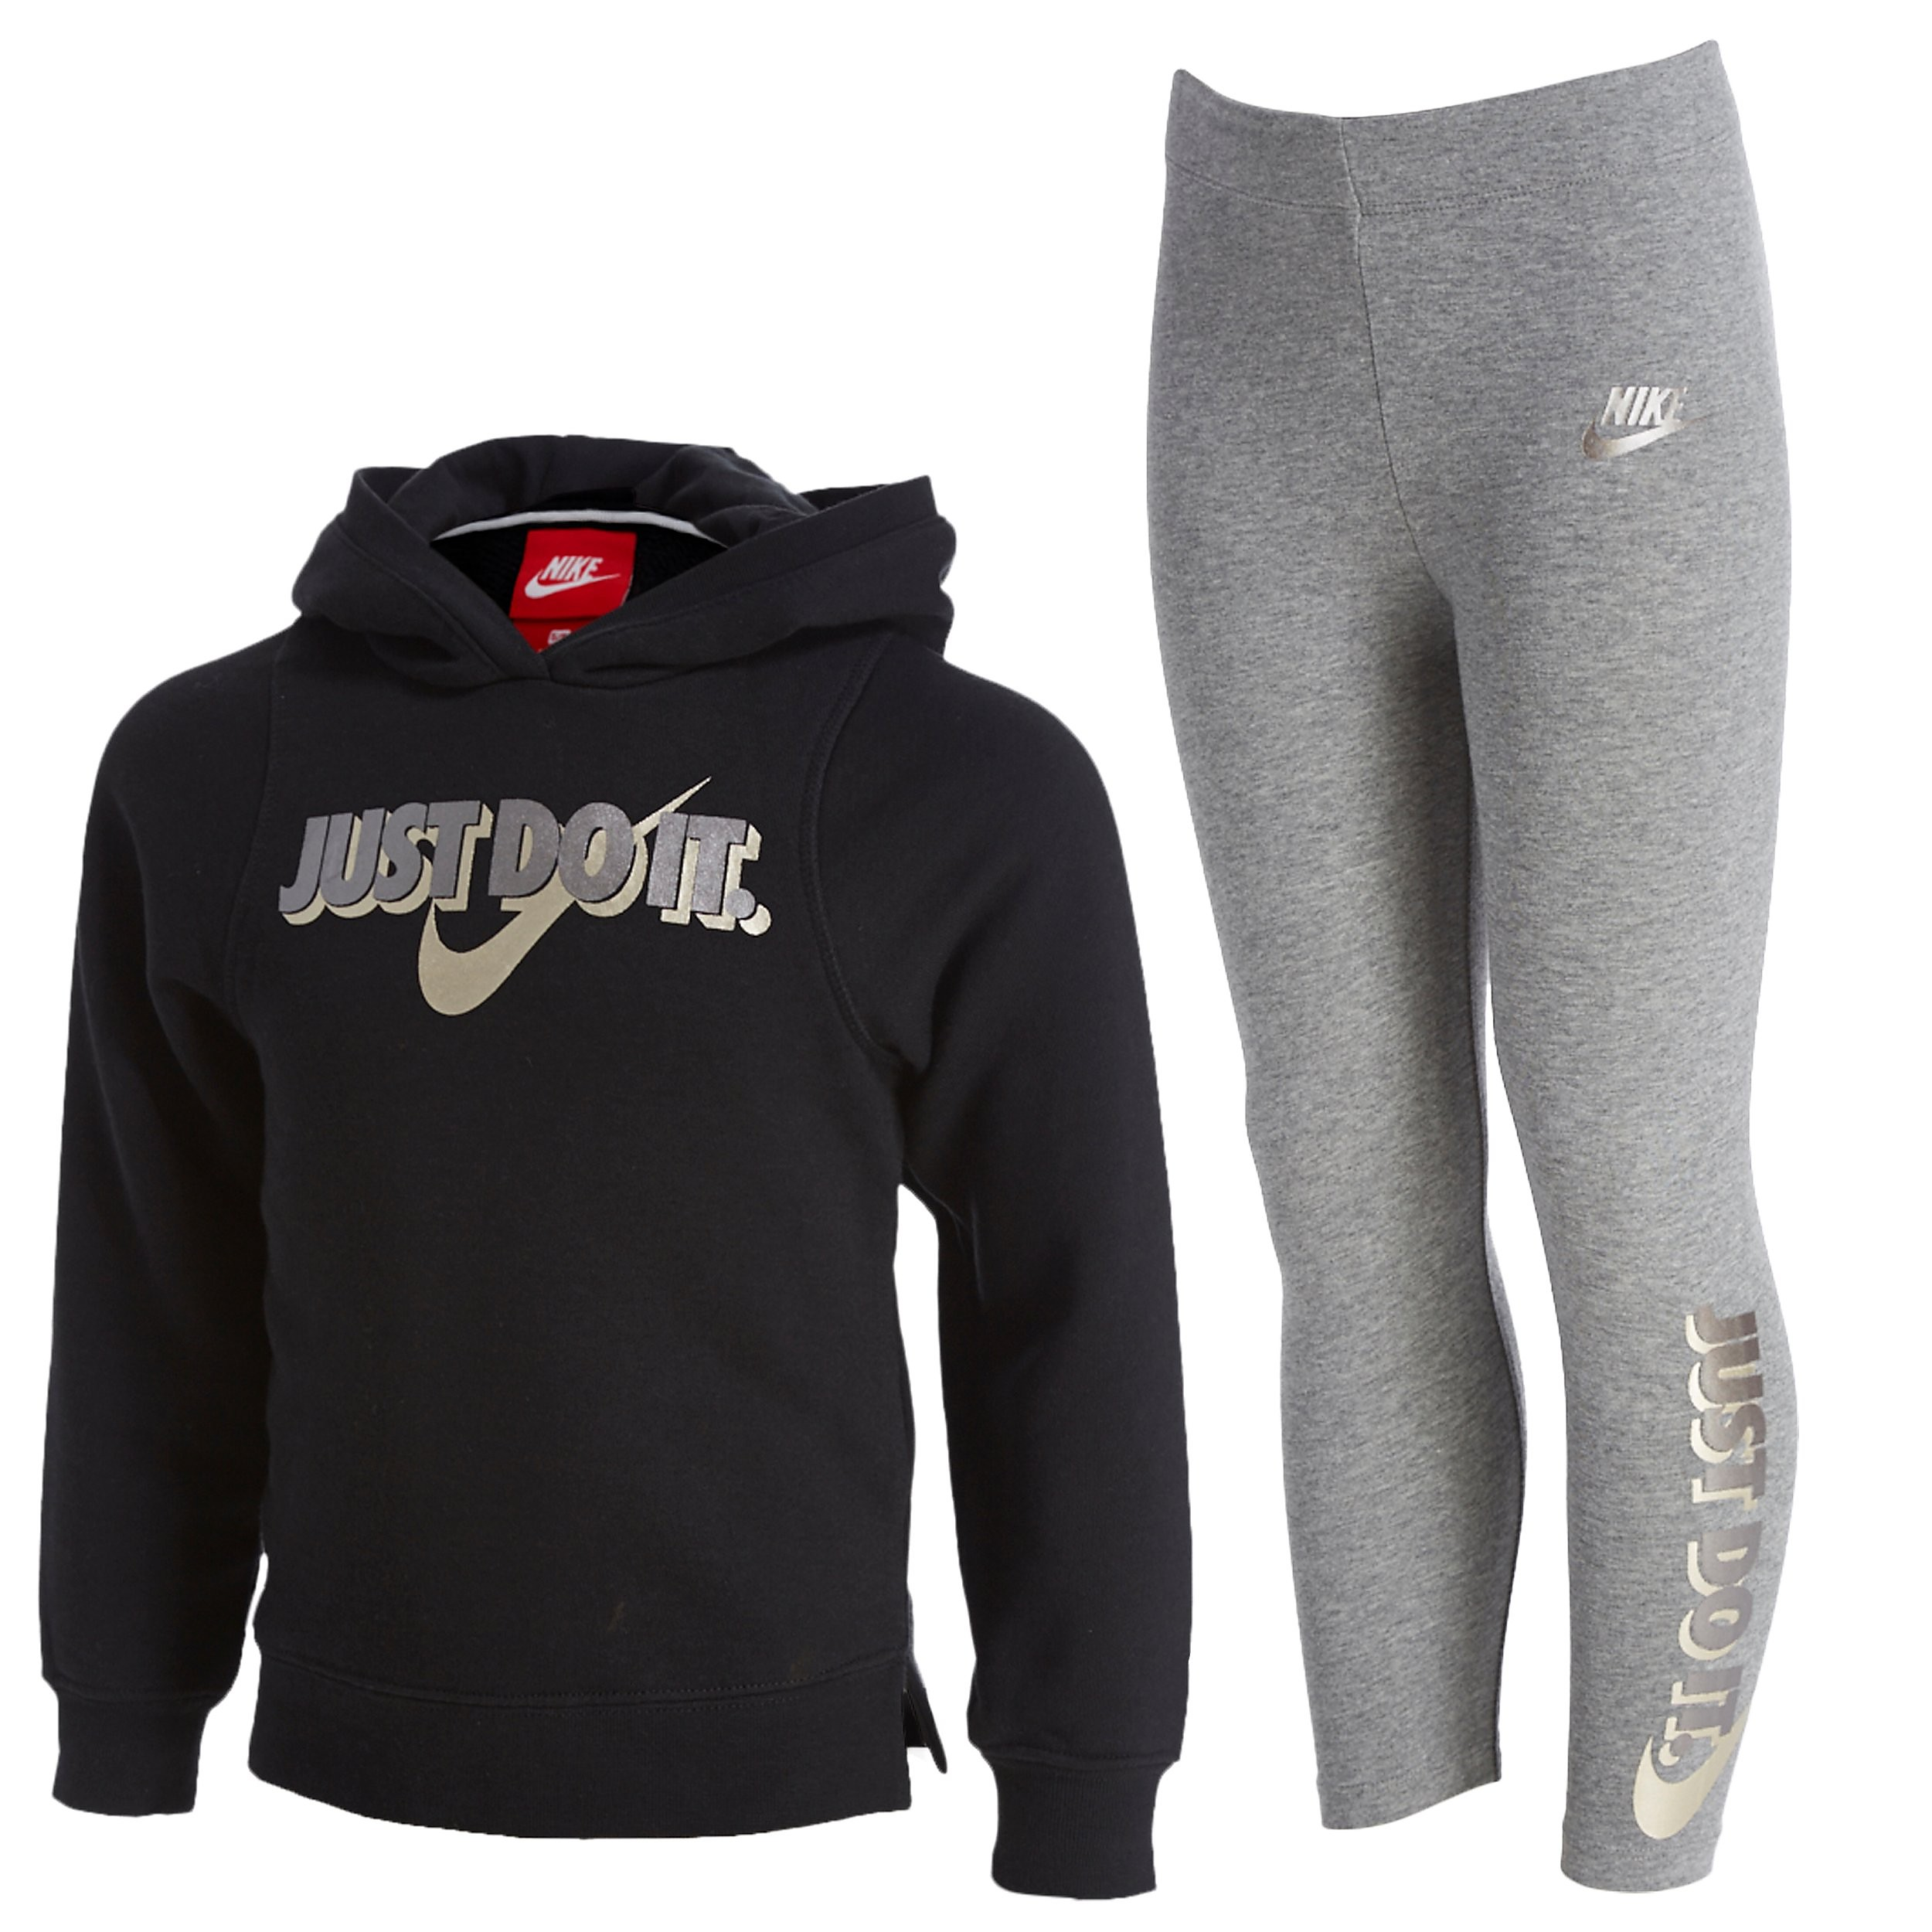 Nike Just Do It Felpa/Leggings Completo Bambina